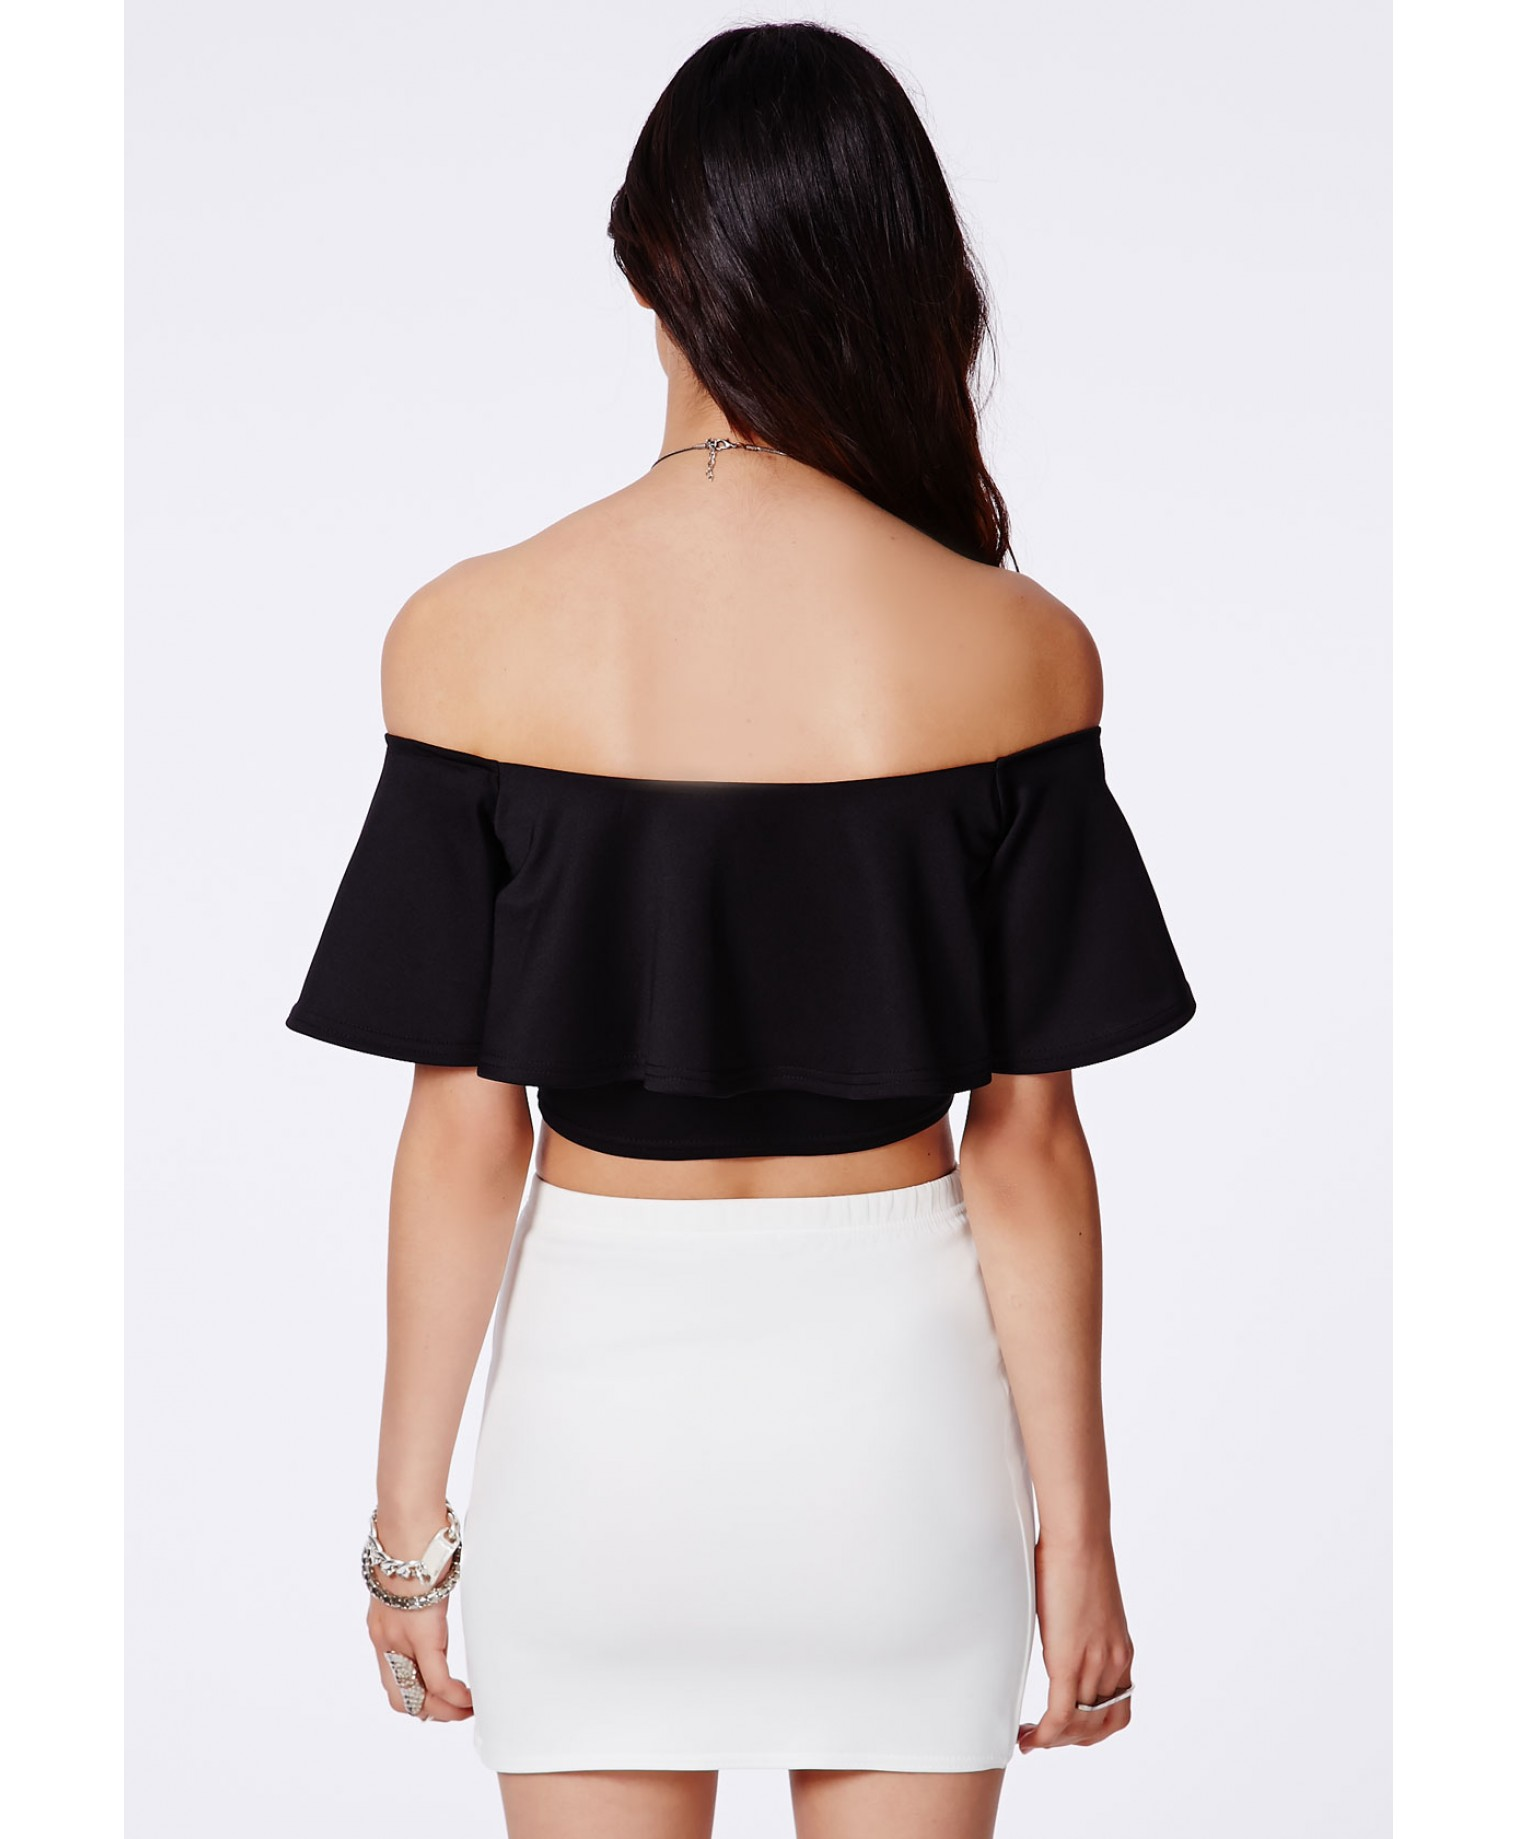 Missguided - Sirinda Black Bardot Frill Crop Top